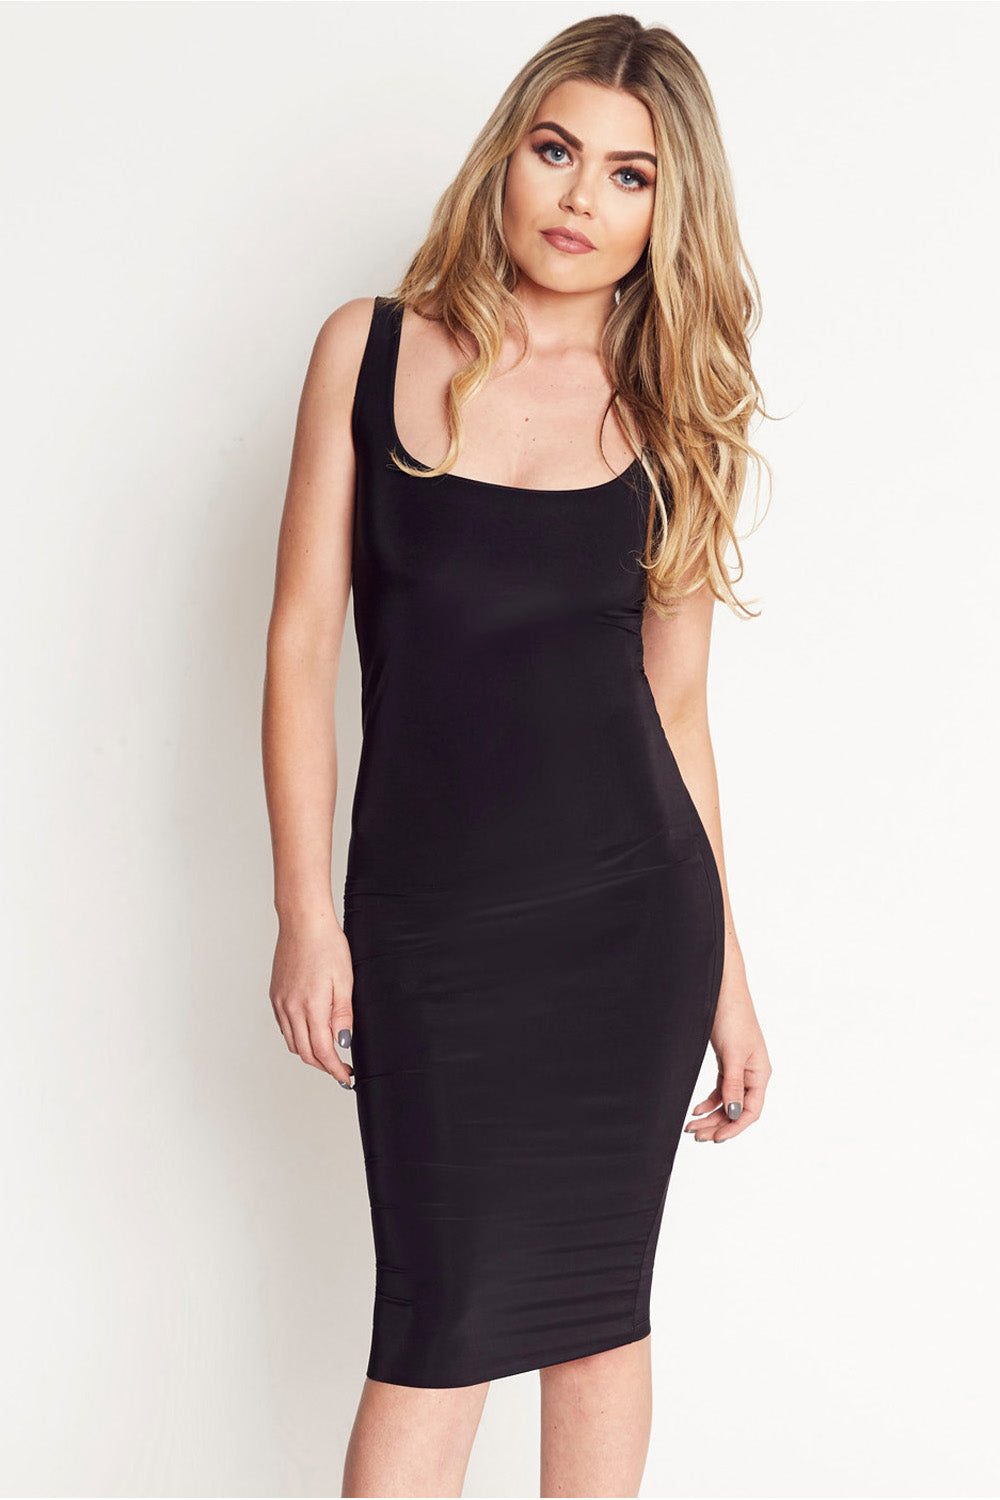 Harper Scoop Neck Bodycon Midi Dress in Black